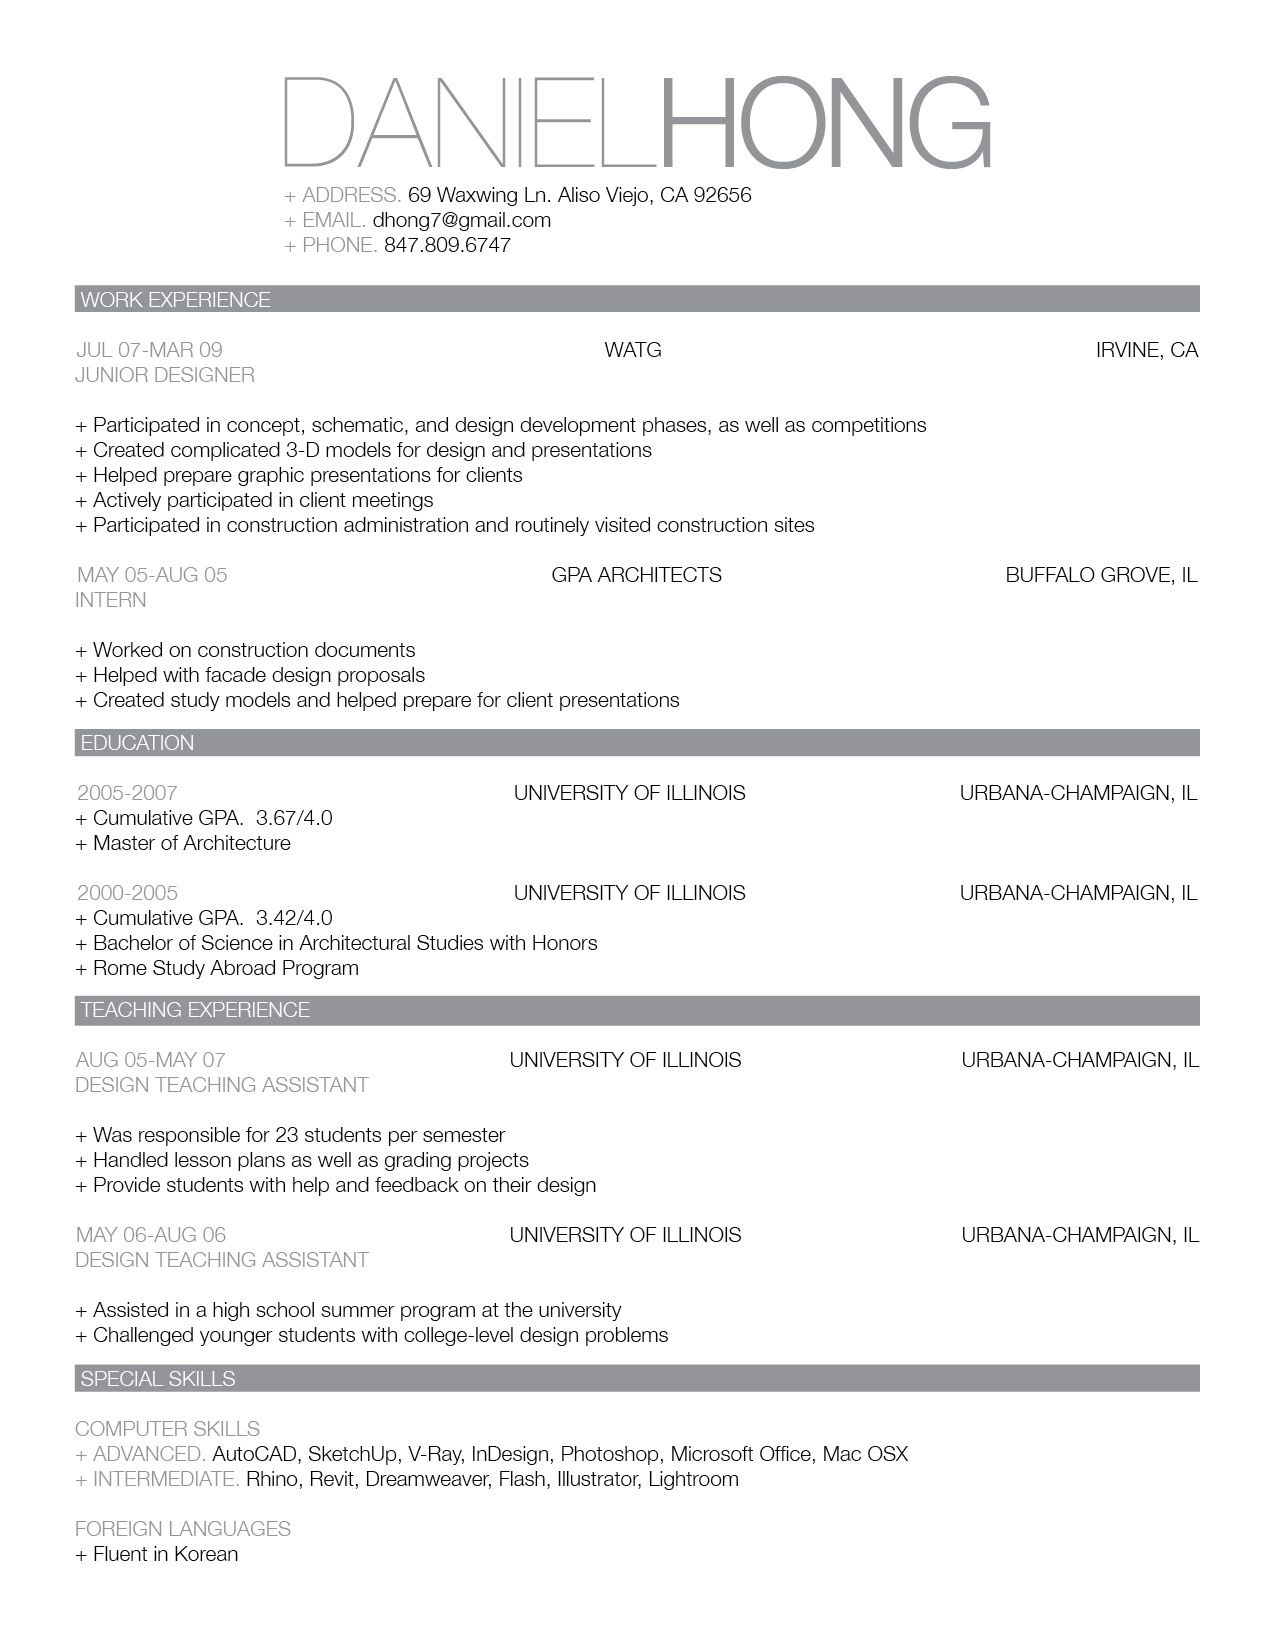 Sample Resume Template Updated Cv And Work Sample  Professional Resume Sample Resume